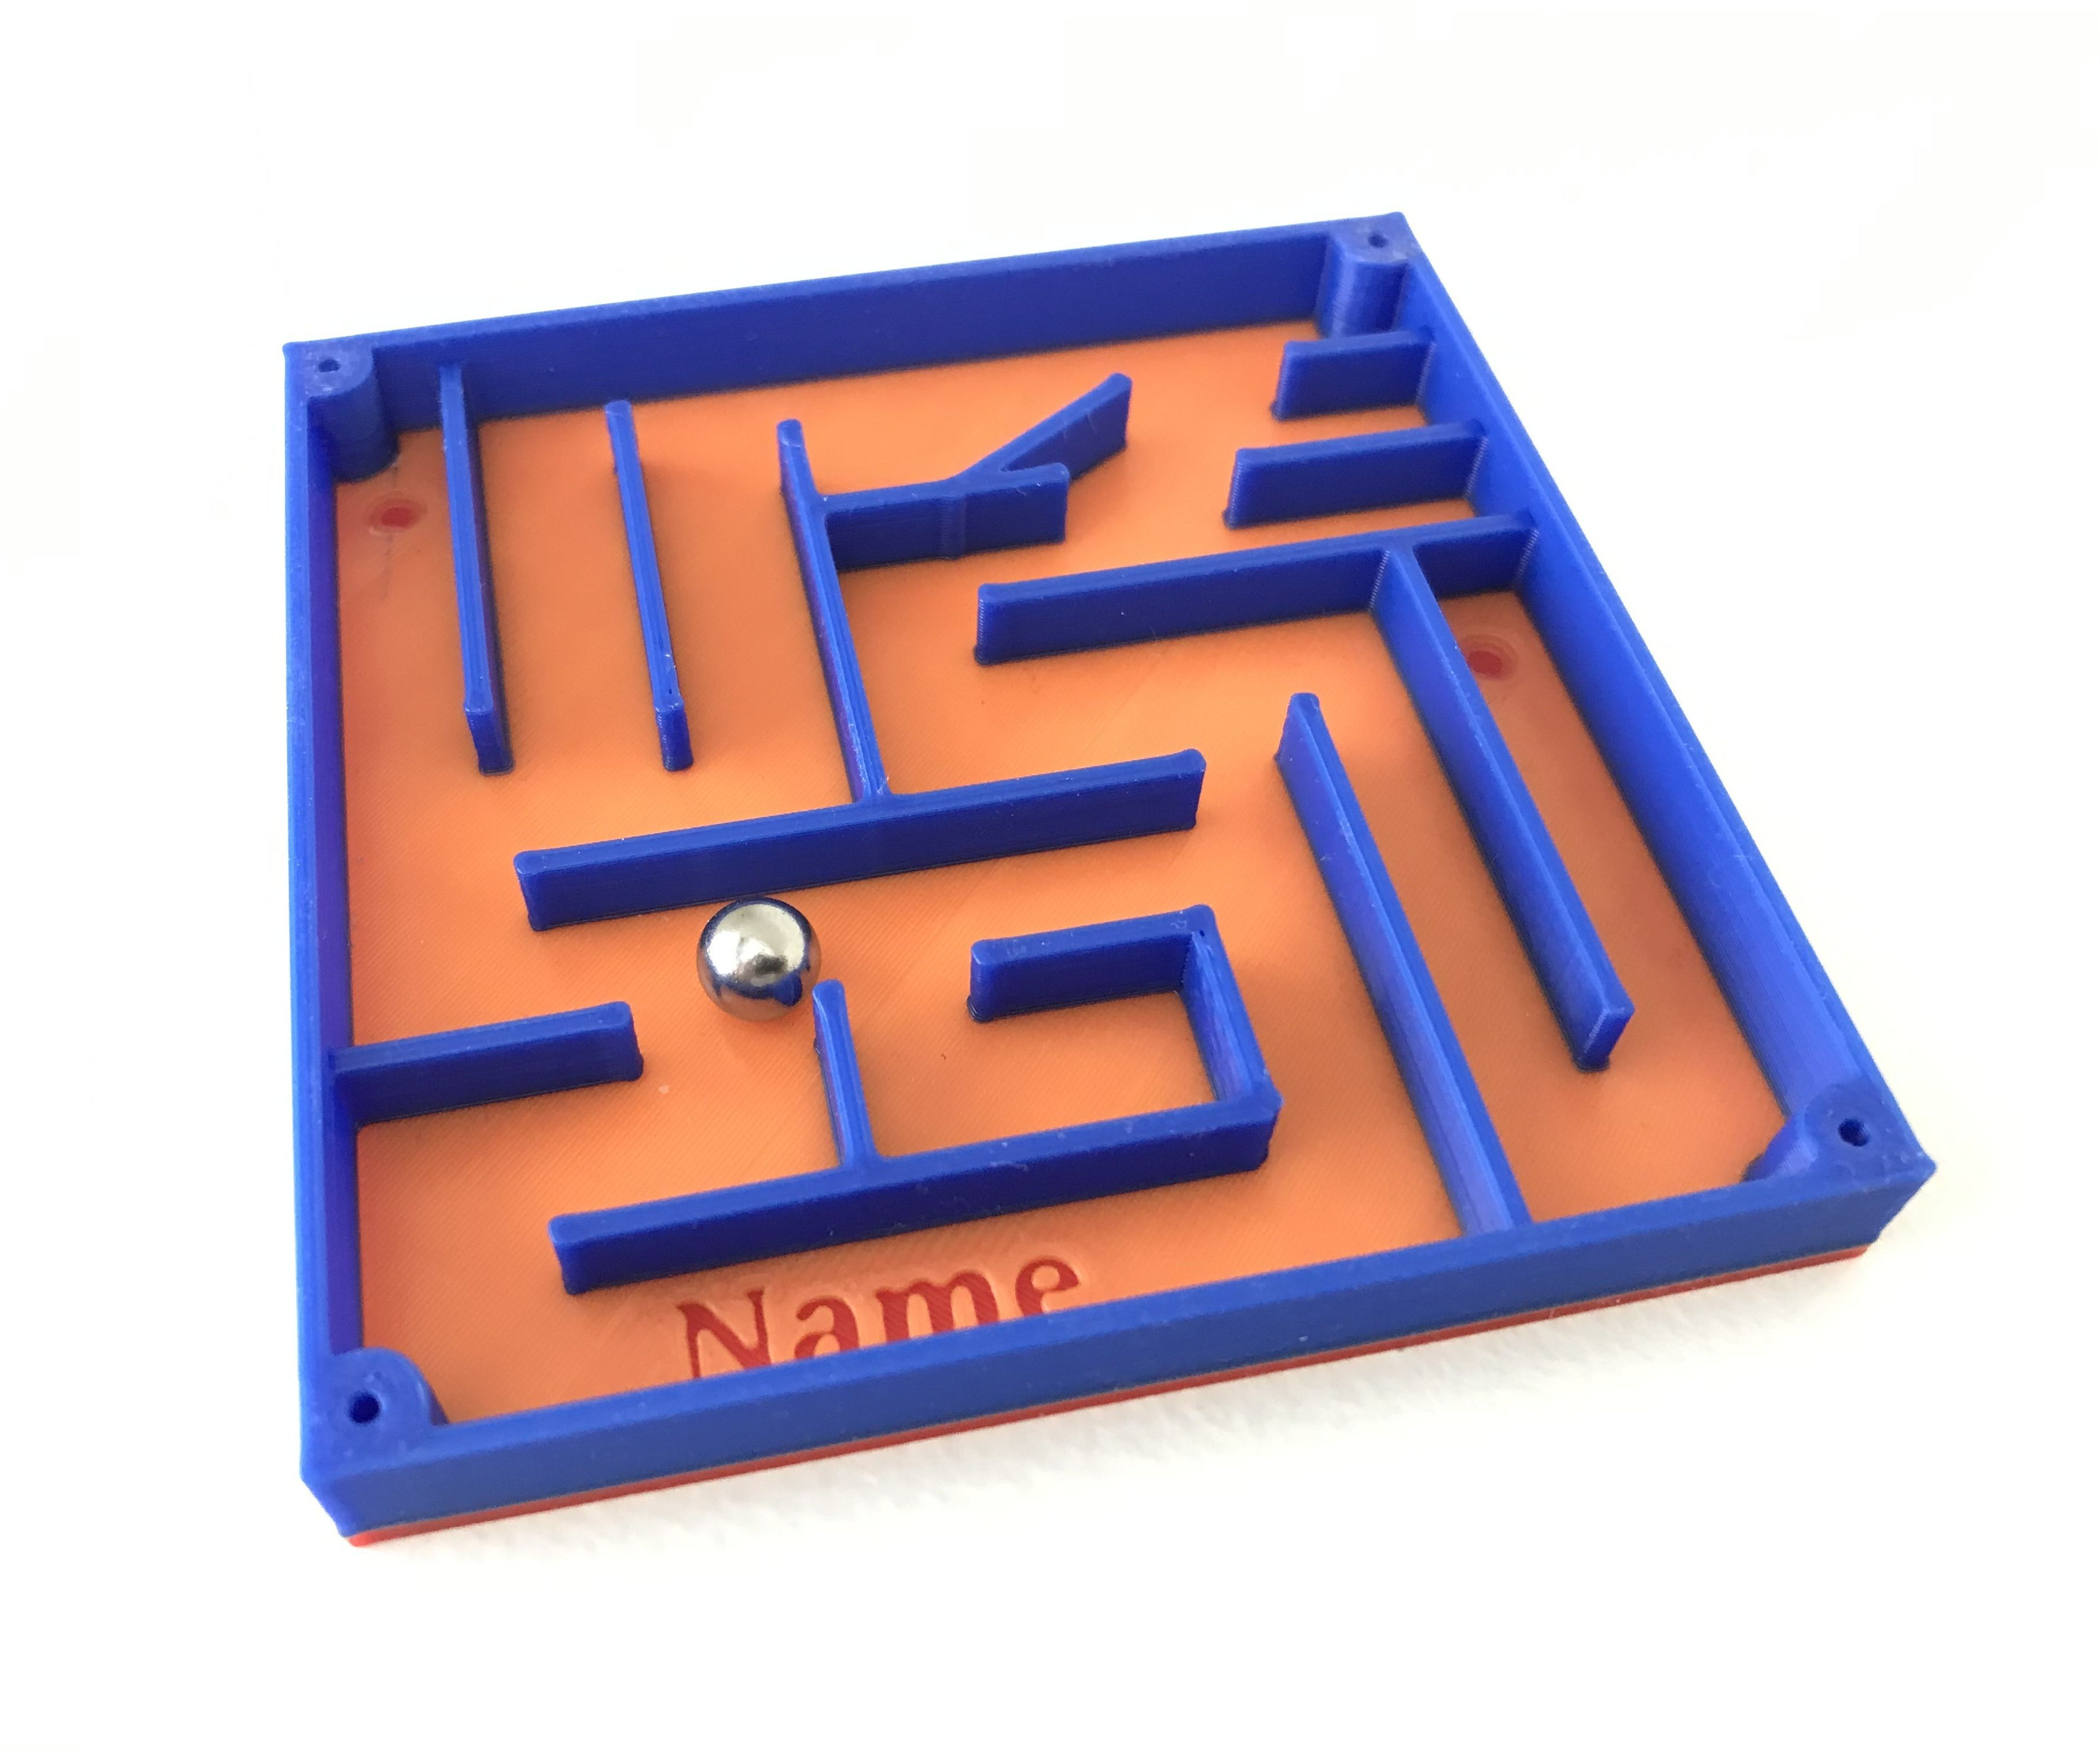 Moving Ball Maze - Tinkercad Student Project